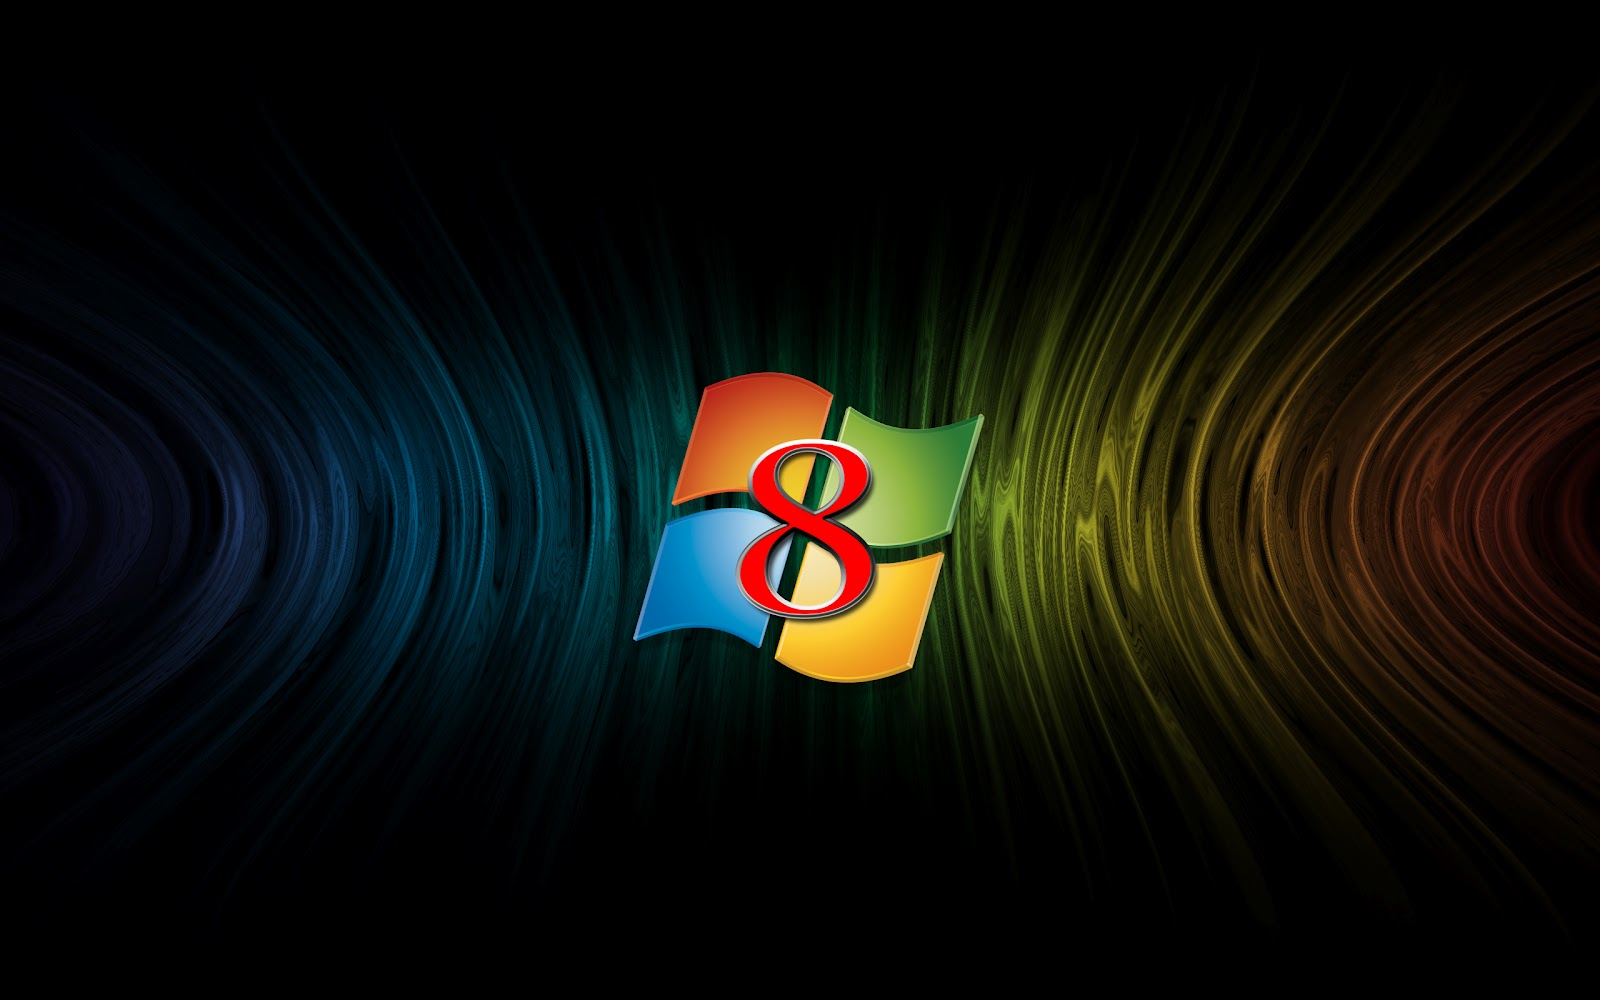 10 New Windows 8 Wallpaper Hd 3d For Desktop Full Hd 1920: HD Wallpapers Fine: Windows 8 New Wallpaper Hd For Desktop